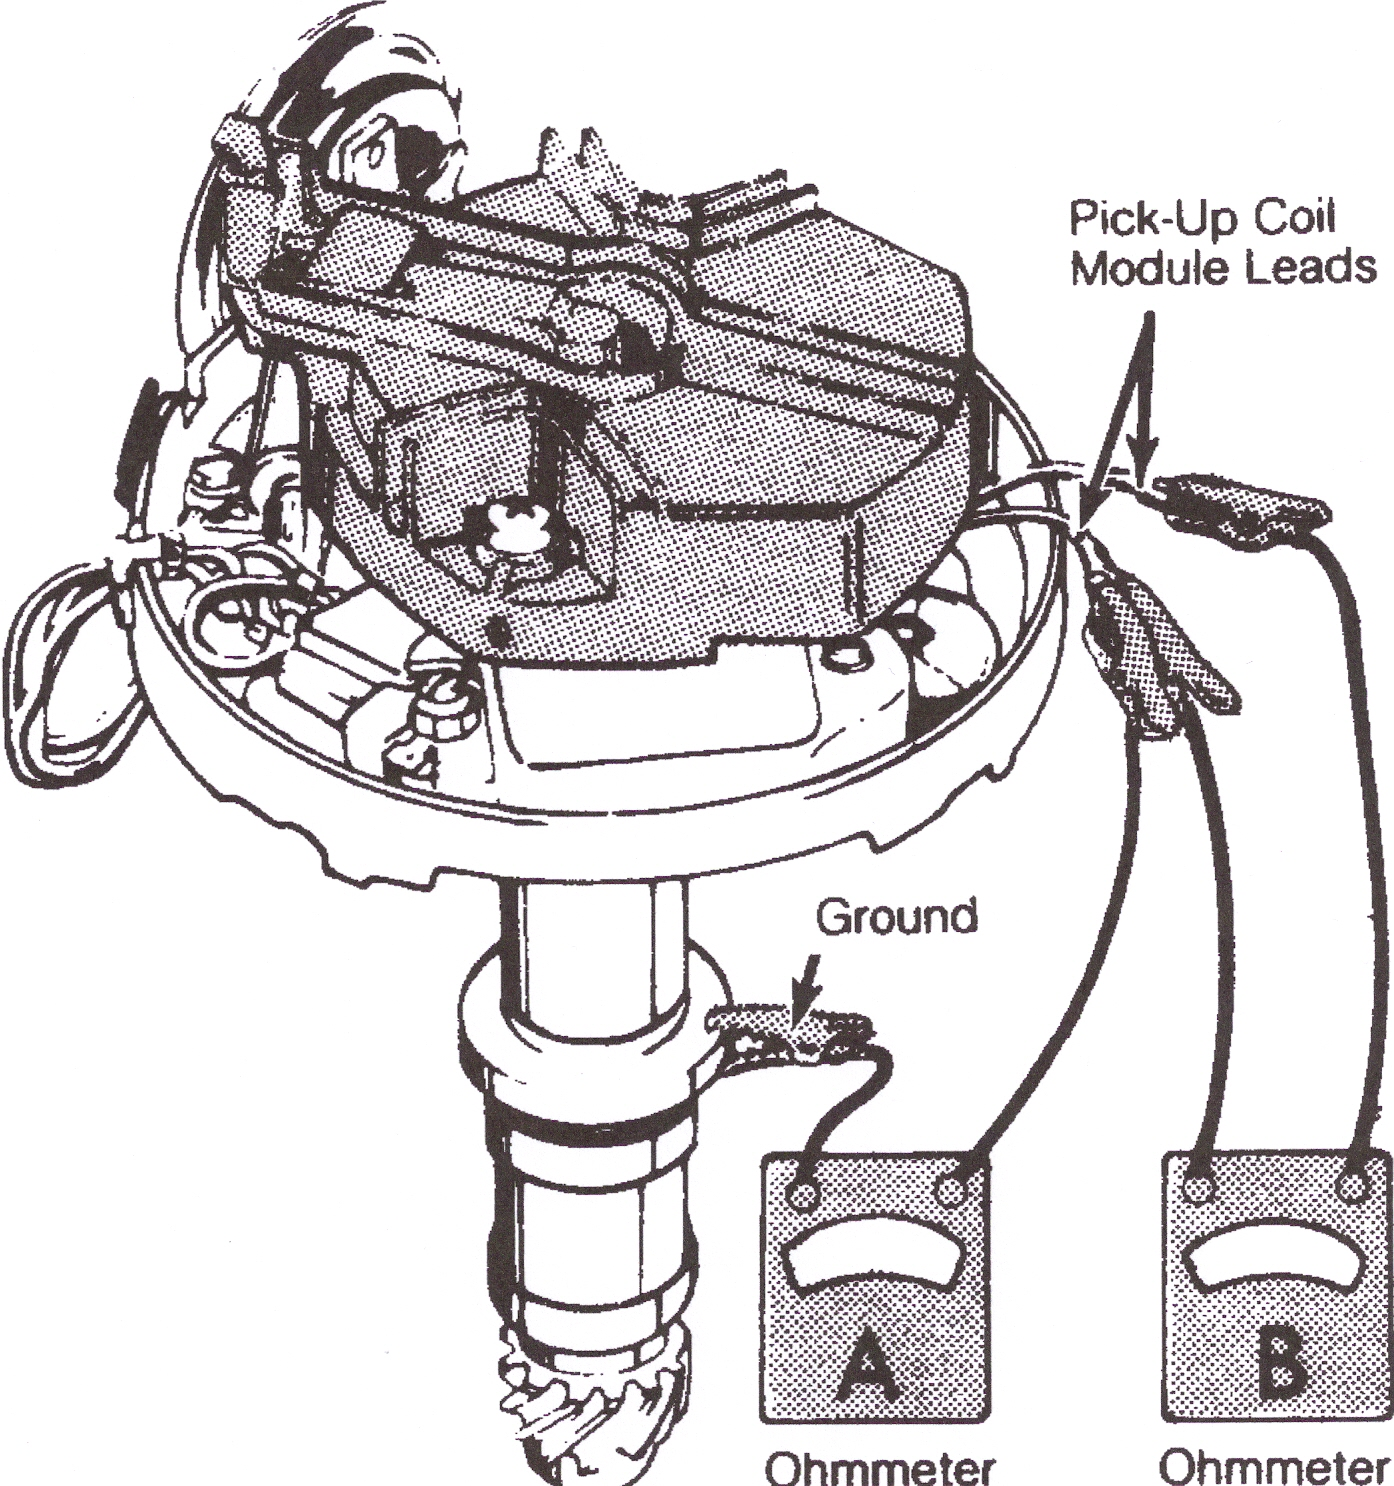 Macs Blog Notes Troubleshooting Gms Hei Ignition System Gm Module Wiring Diagram Engine Scheme For Your